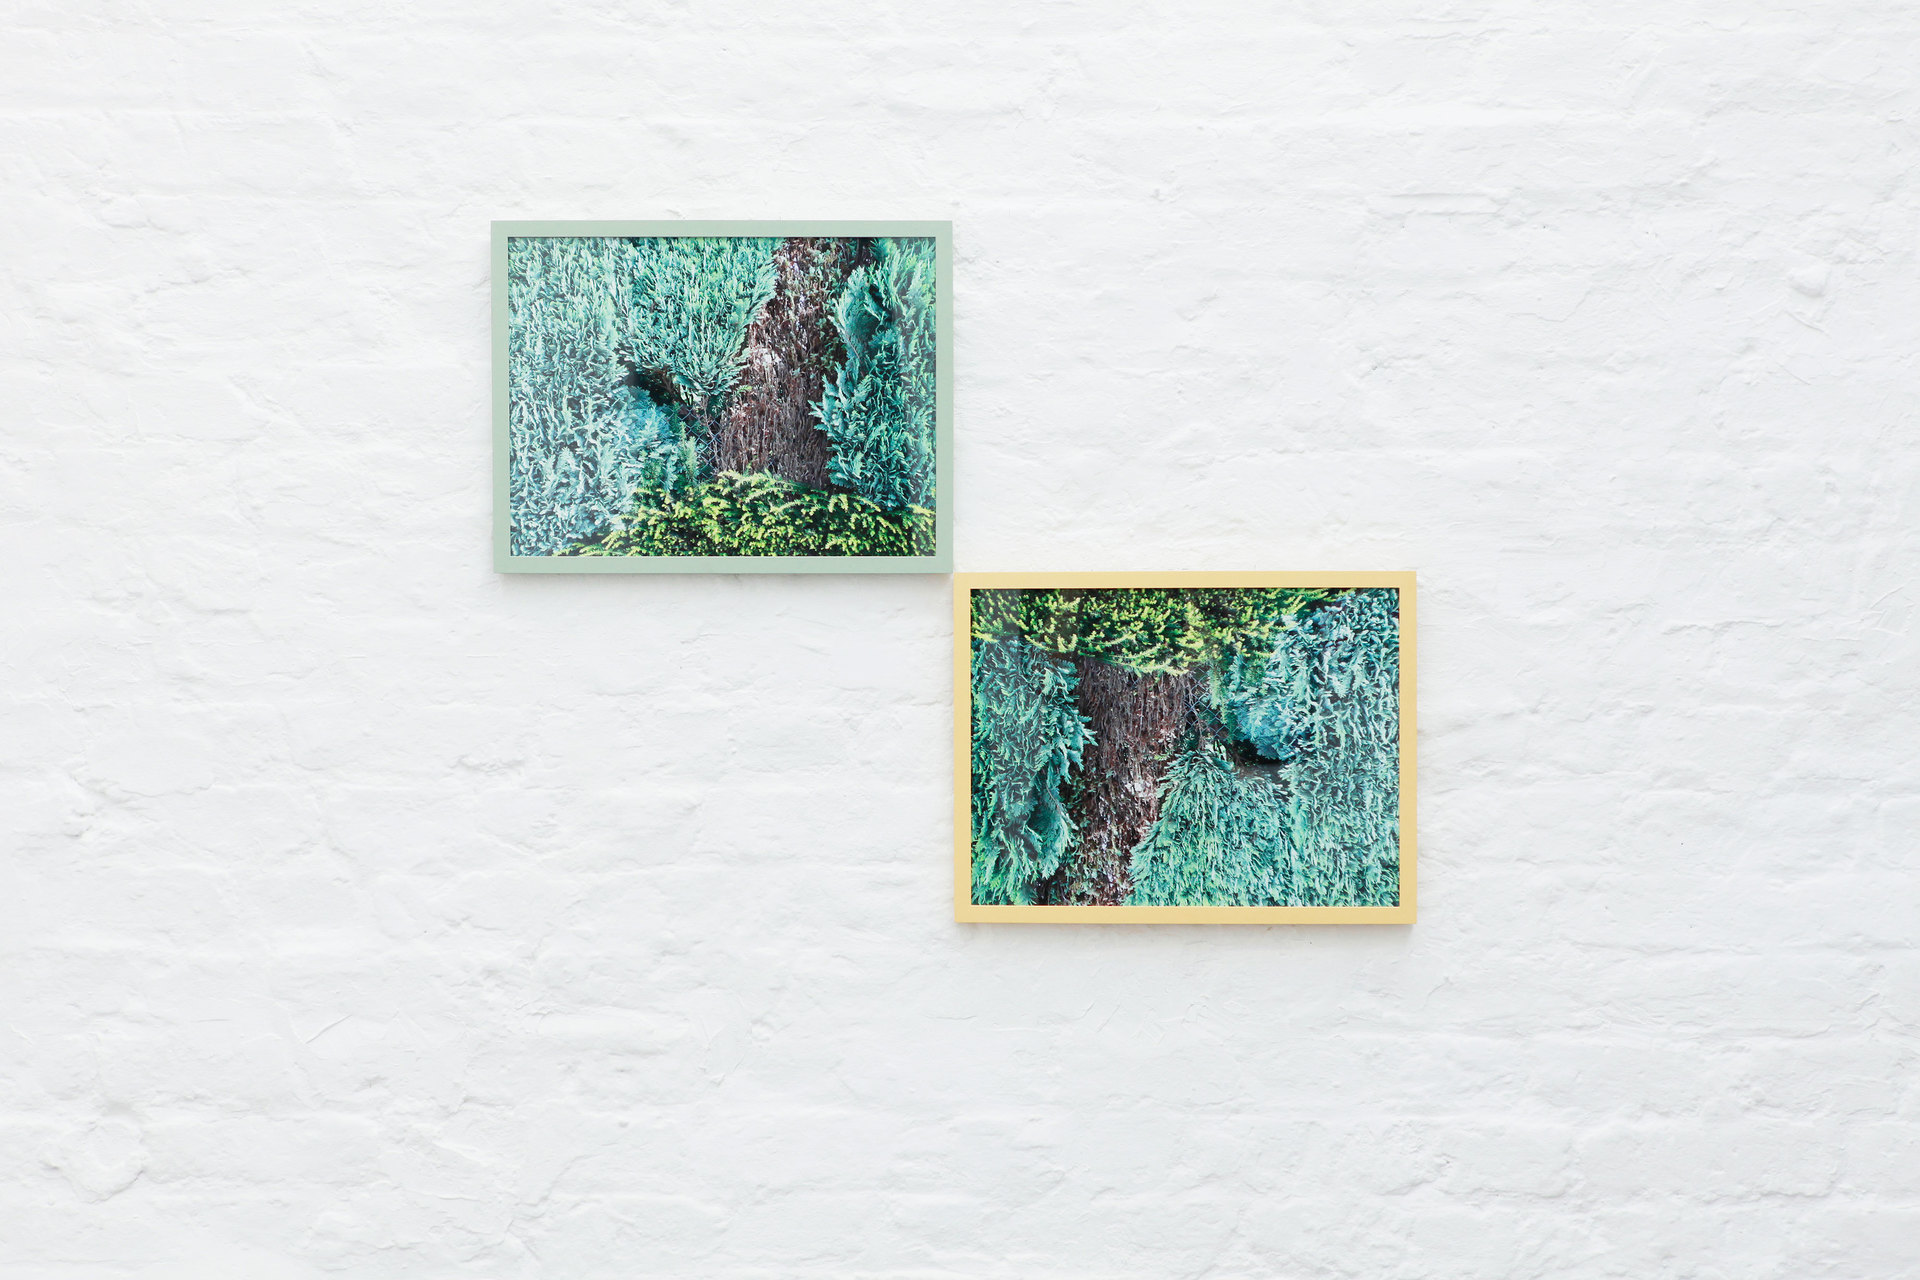 Cornelia Baltes, Baccara, 2012, Edition 1/3 + 2 artist prints, 60 x 70 cm, Giclee print in painted frame, Cell Project Space